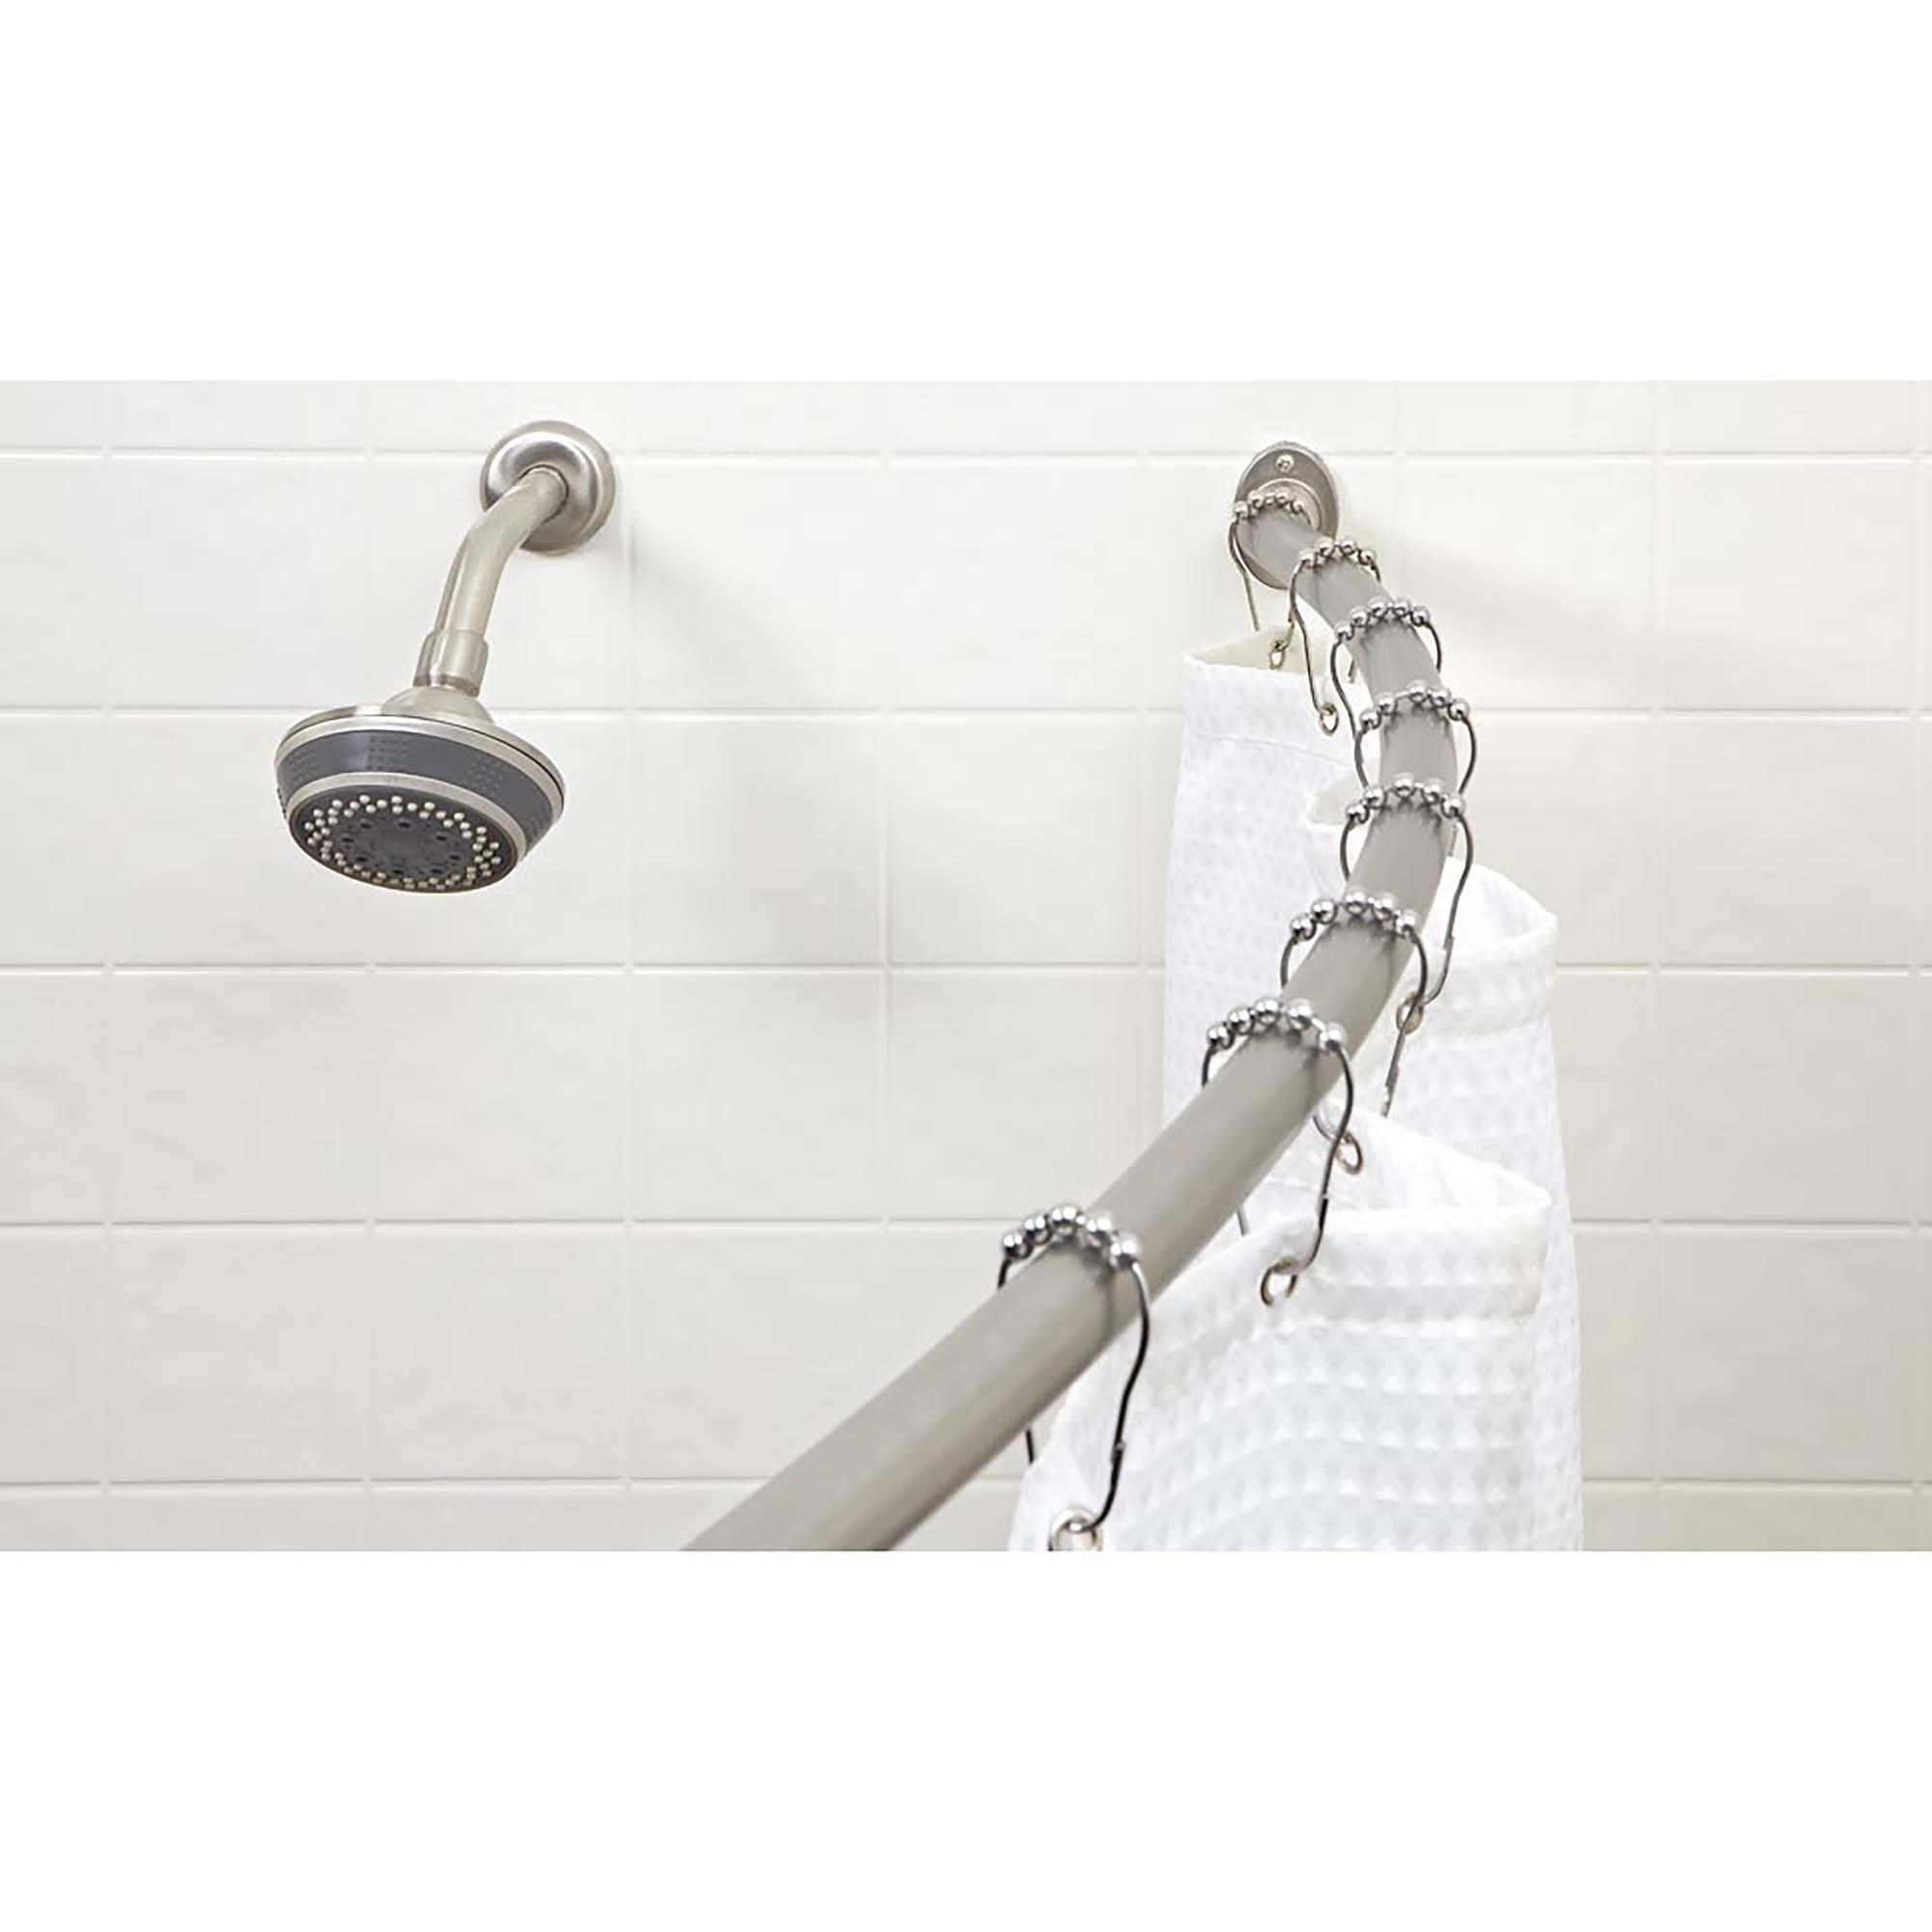 Bath Bliss Curved Shower Rod, Satin Nickel Finish